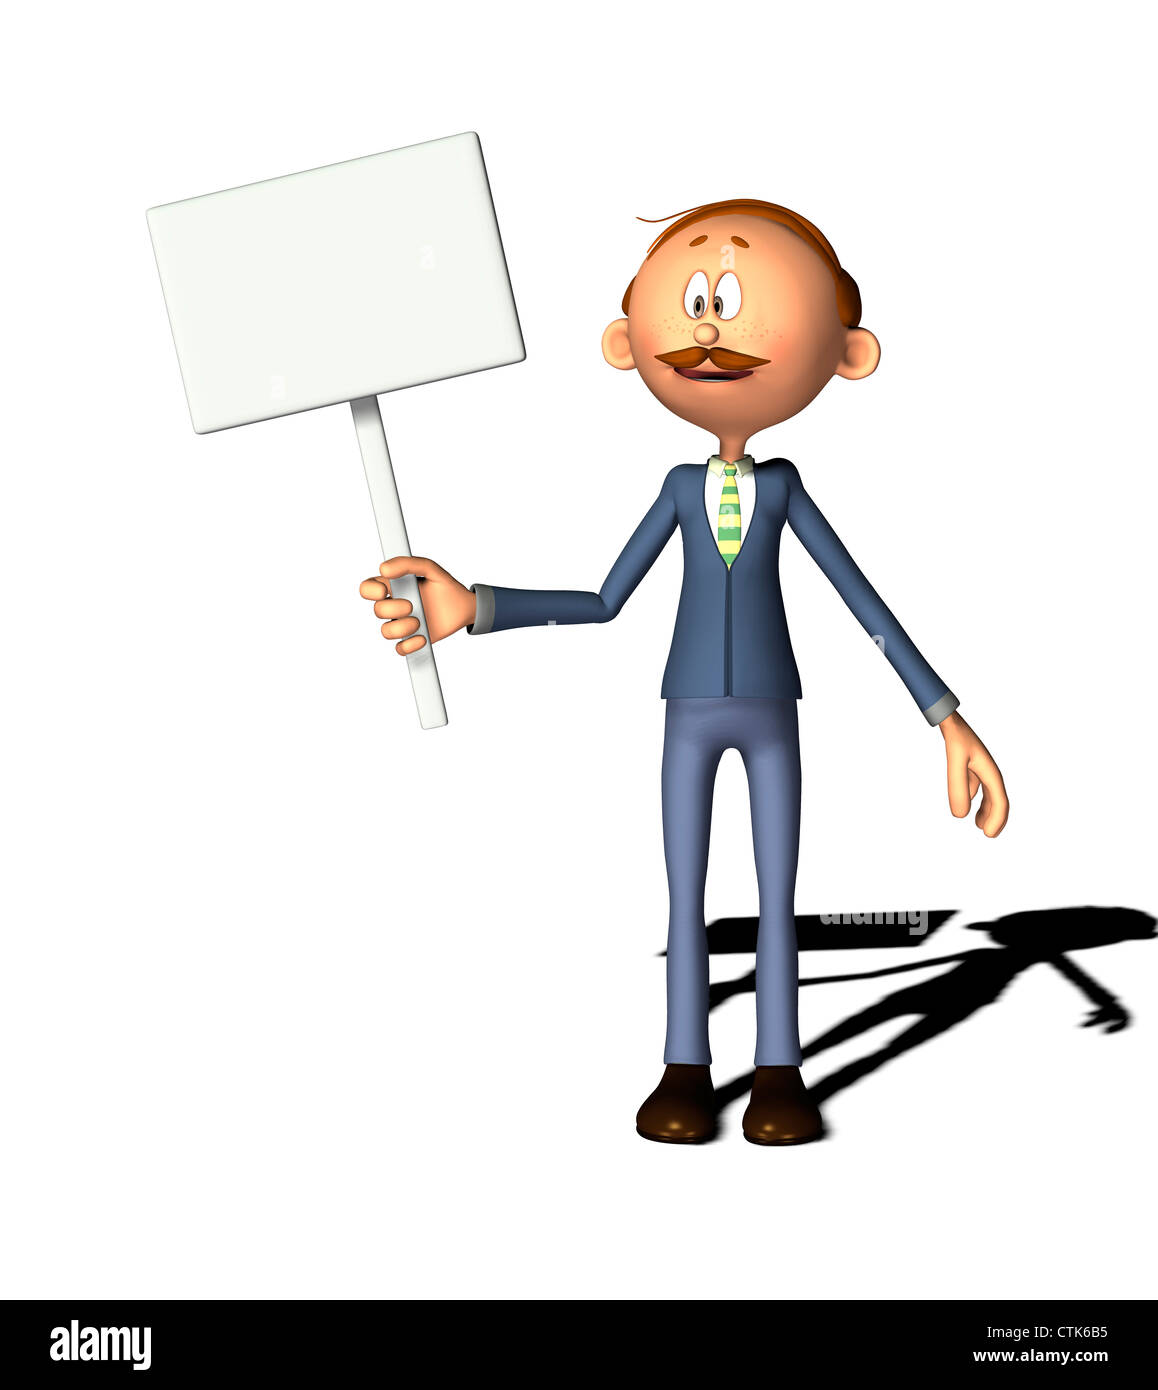 Cartoon Figur Mann mit Schild Stockfoto